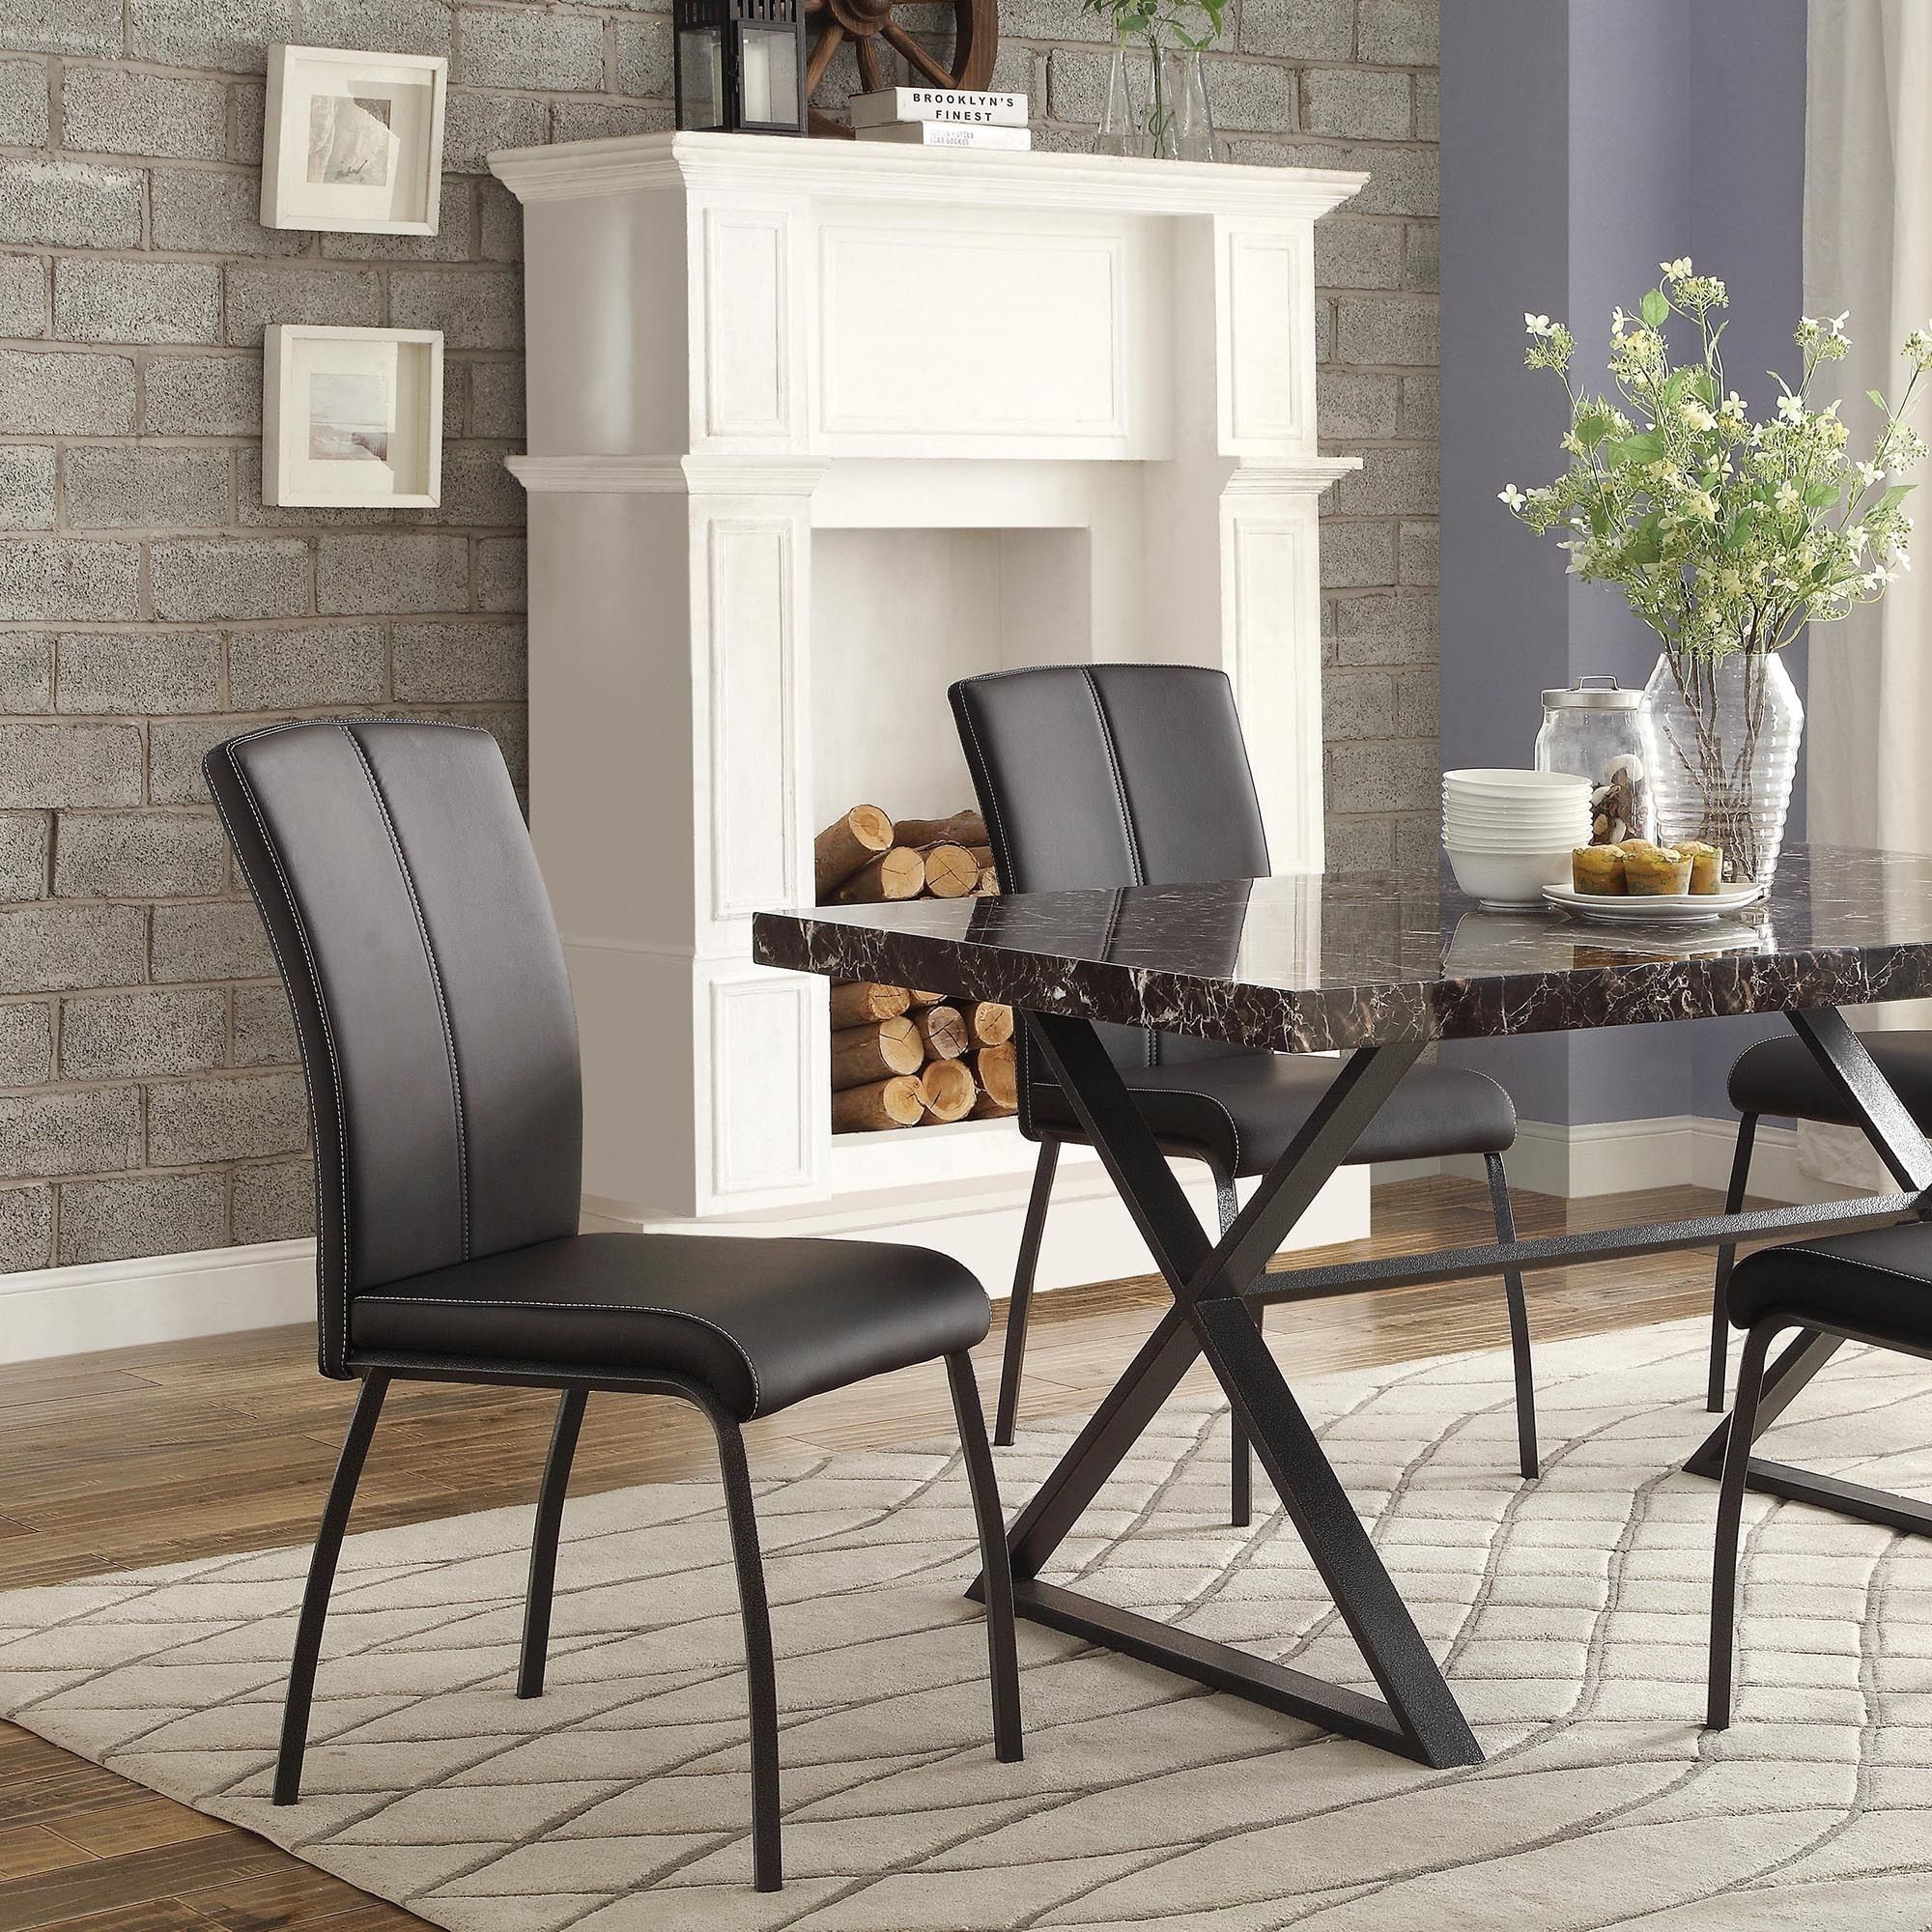 Danbury Metal Contoured Upholstered Dining Chair (Set of 2) - Overstock  Shopping -